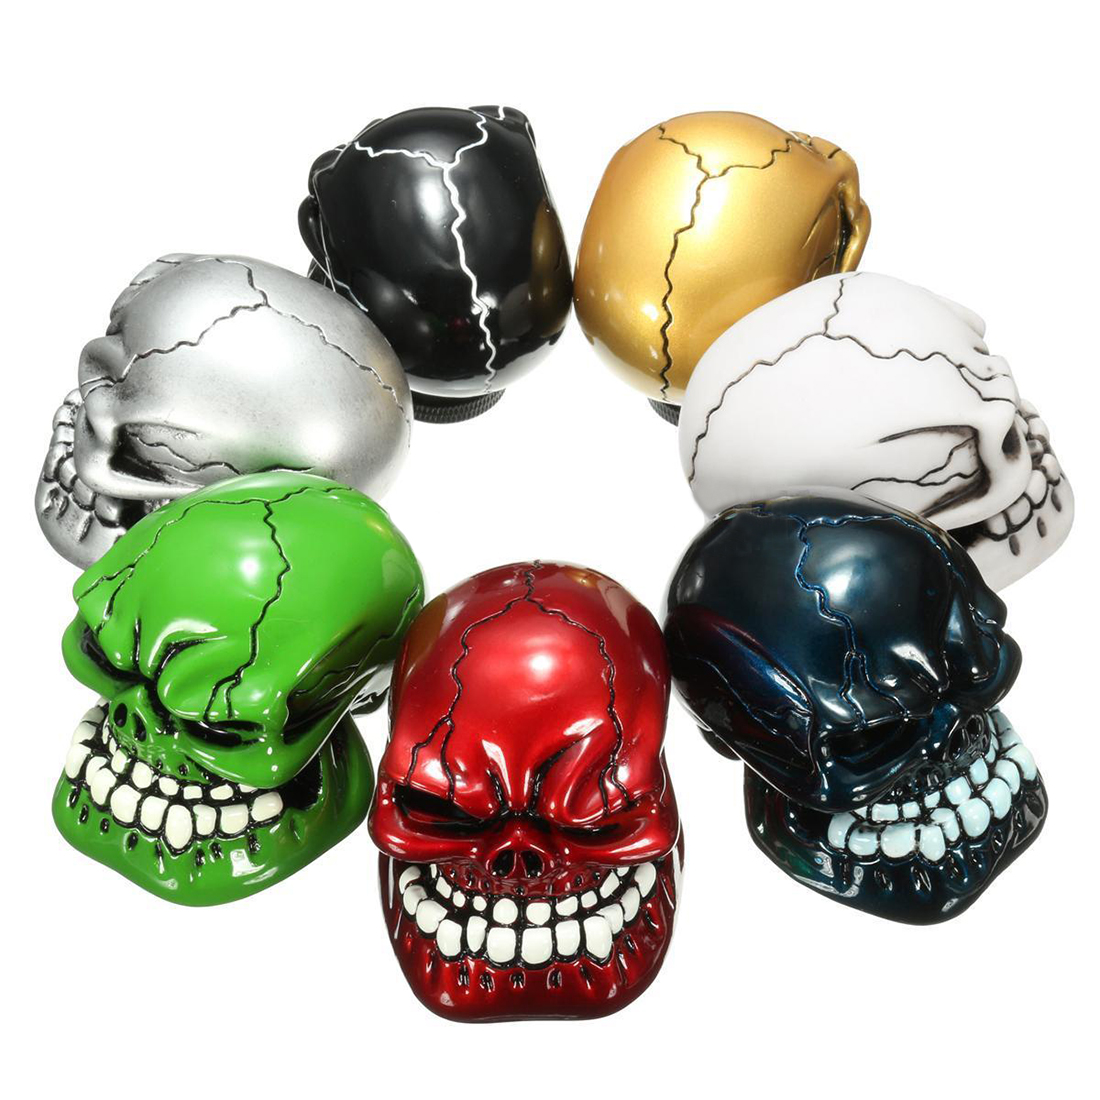 EDFY-Car Carved Manual Skull Gear Stick Shift Knob Lever Shifter M8/M10/M12